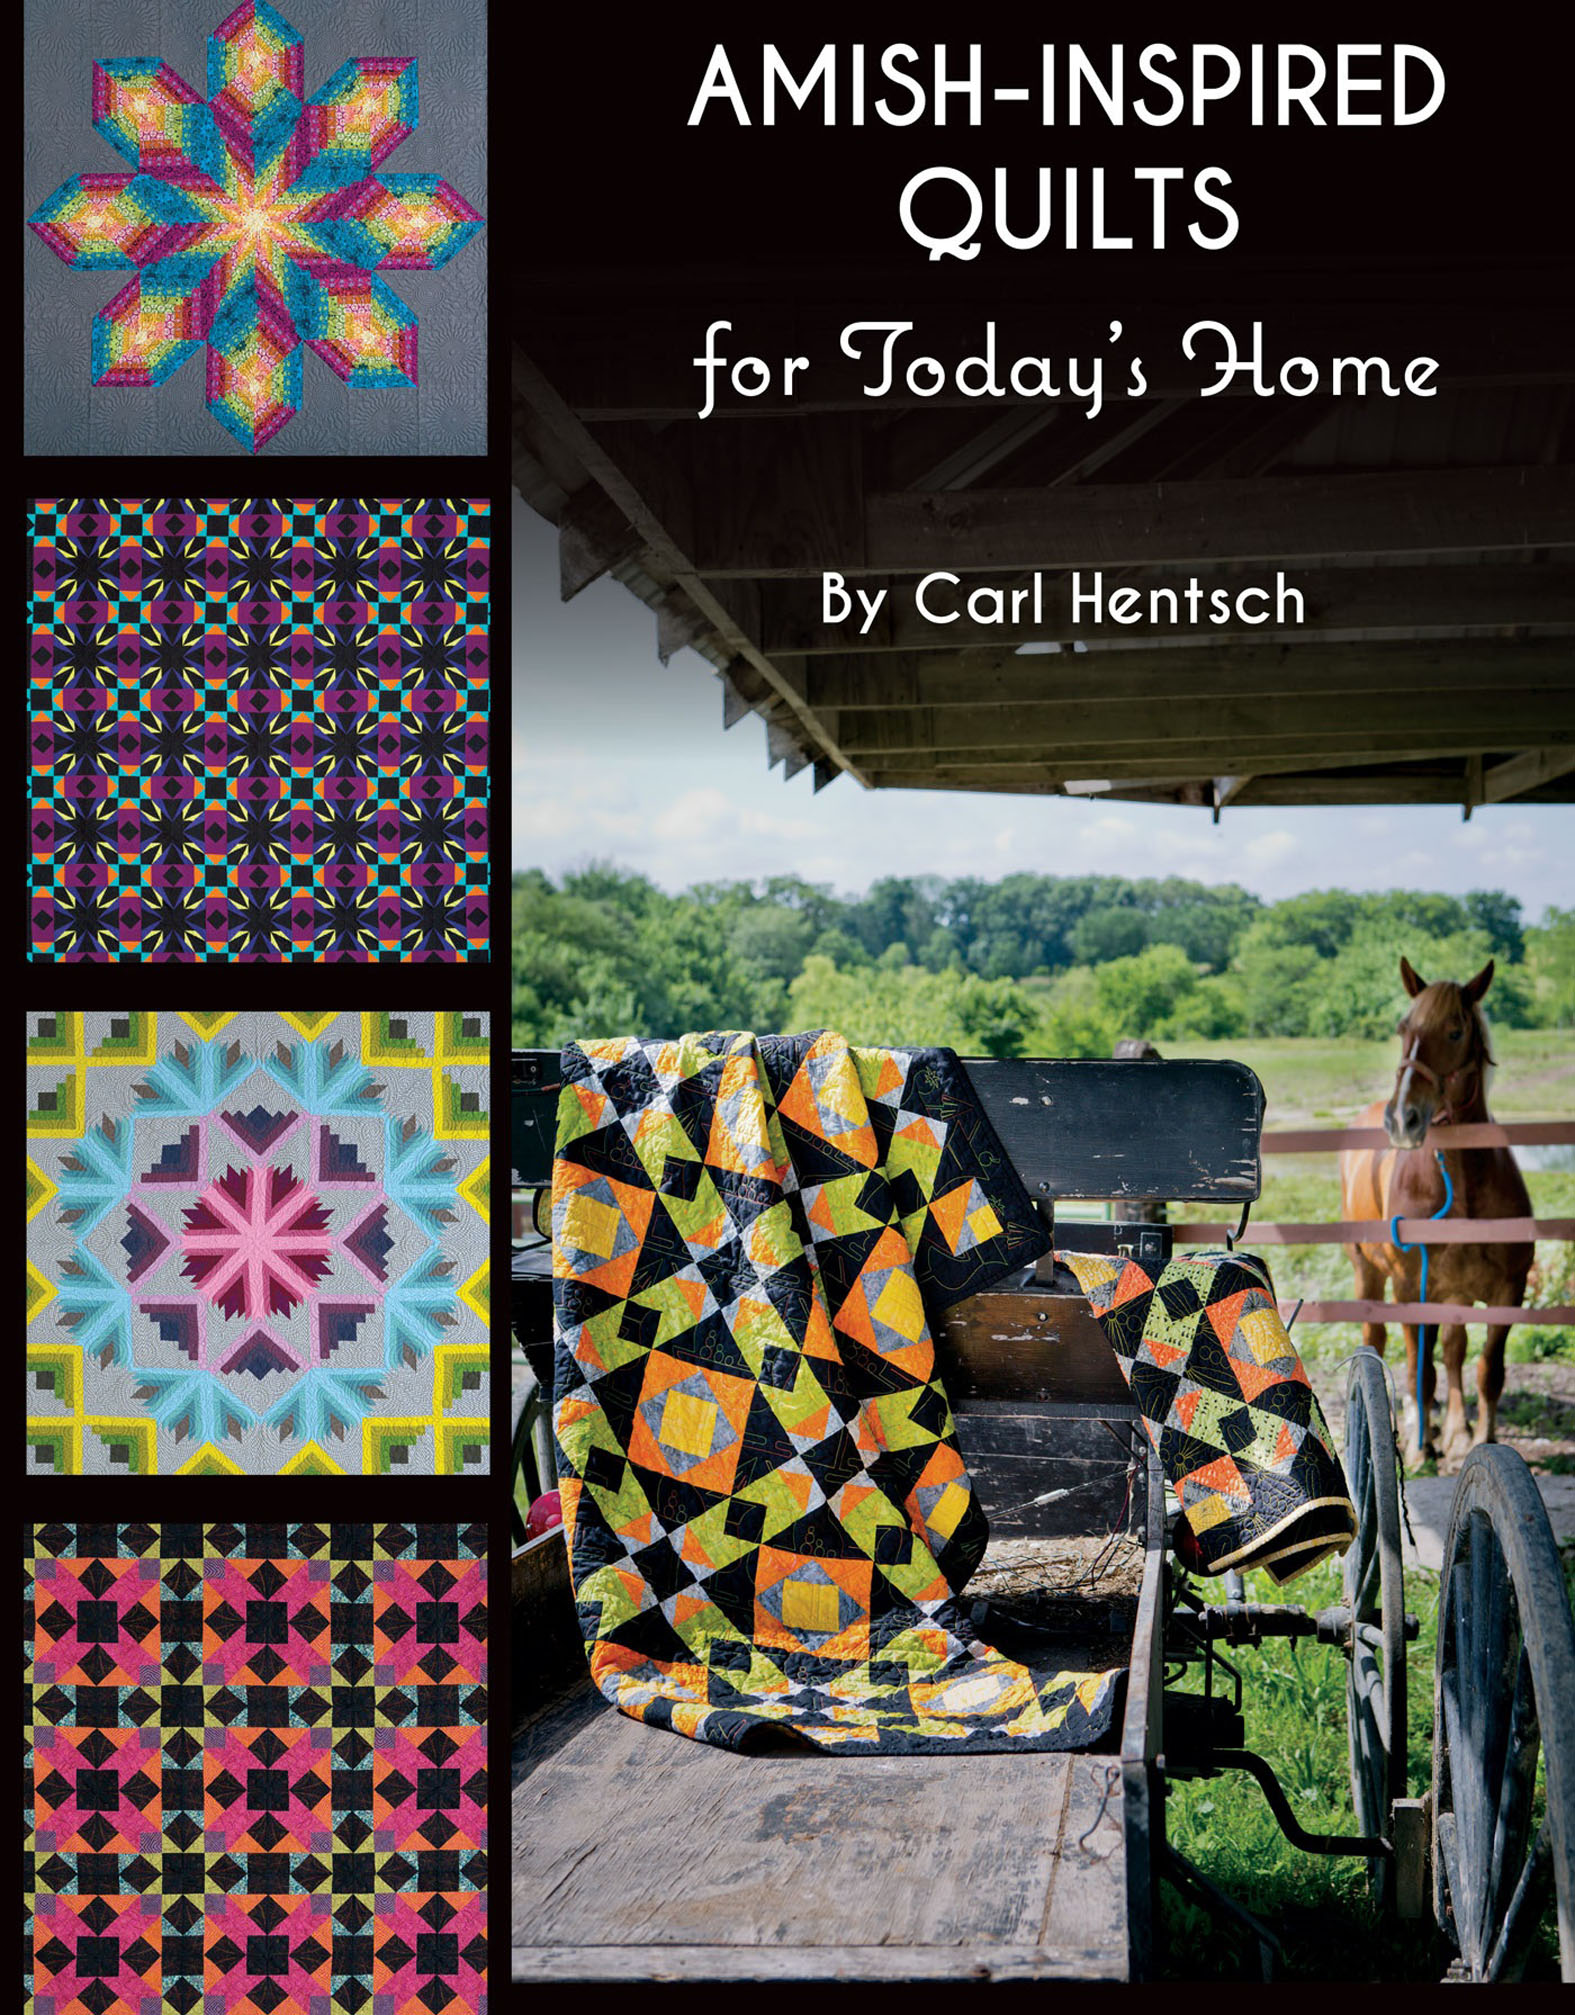 Amish-Inspired Quilts for Today's Home 10 Brilliant Patchwork Quilts